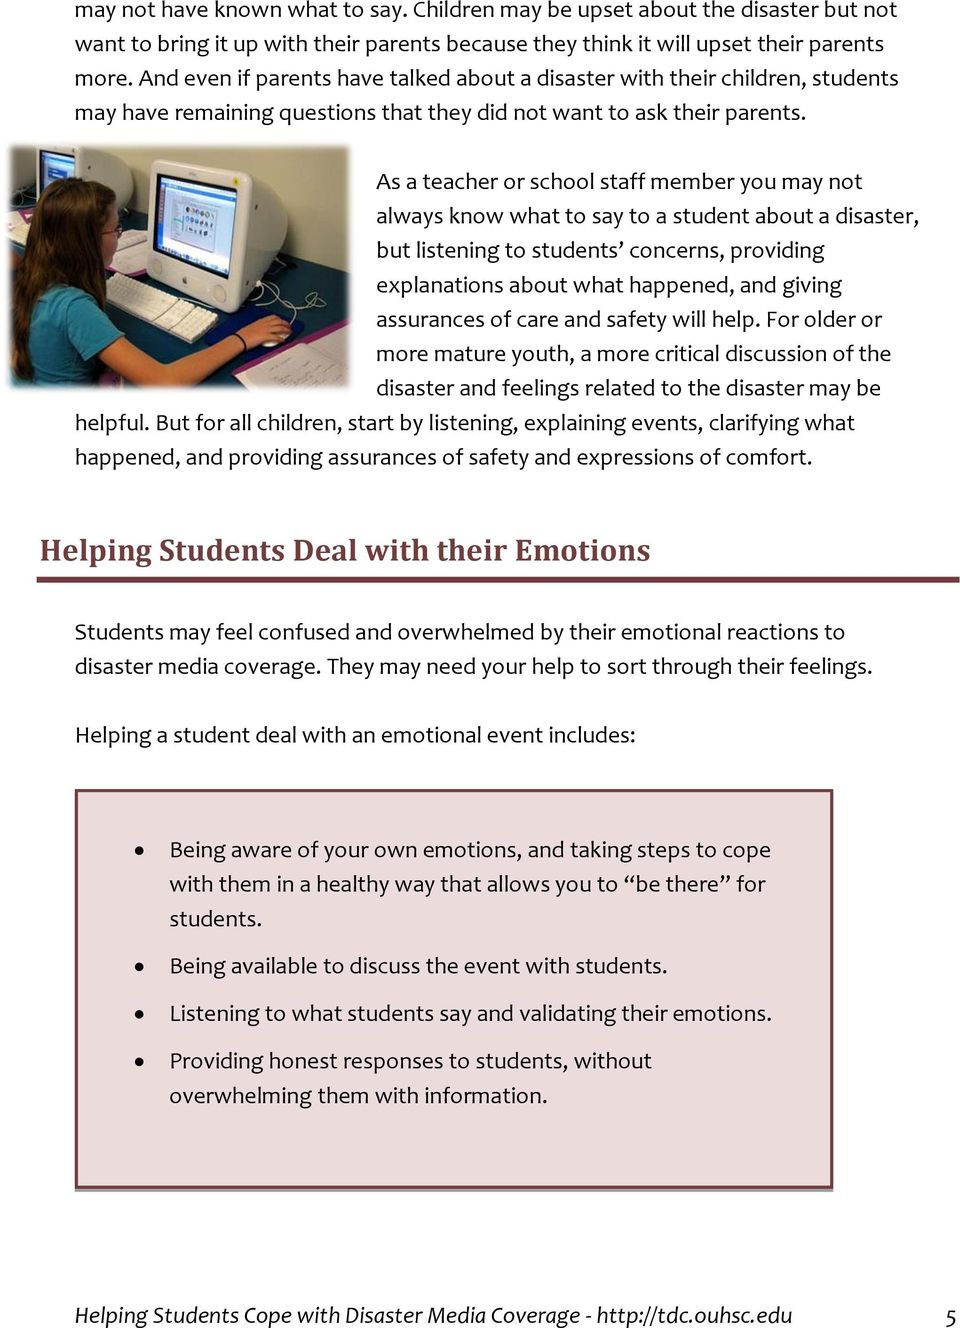 As a teacher or school staff member you may not always know what to say to a student about a disaster, but listening to students concerns, providing explanations about what happened, and giving